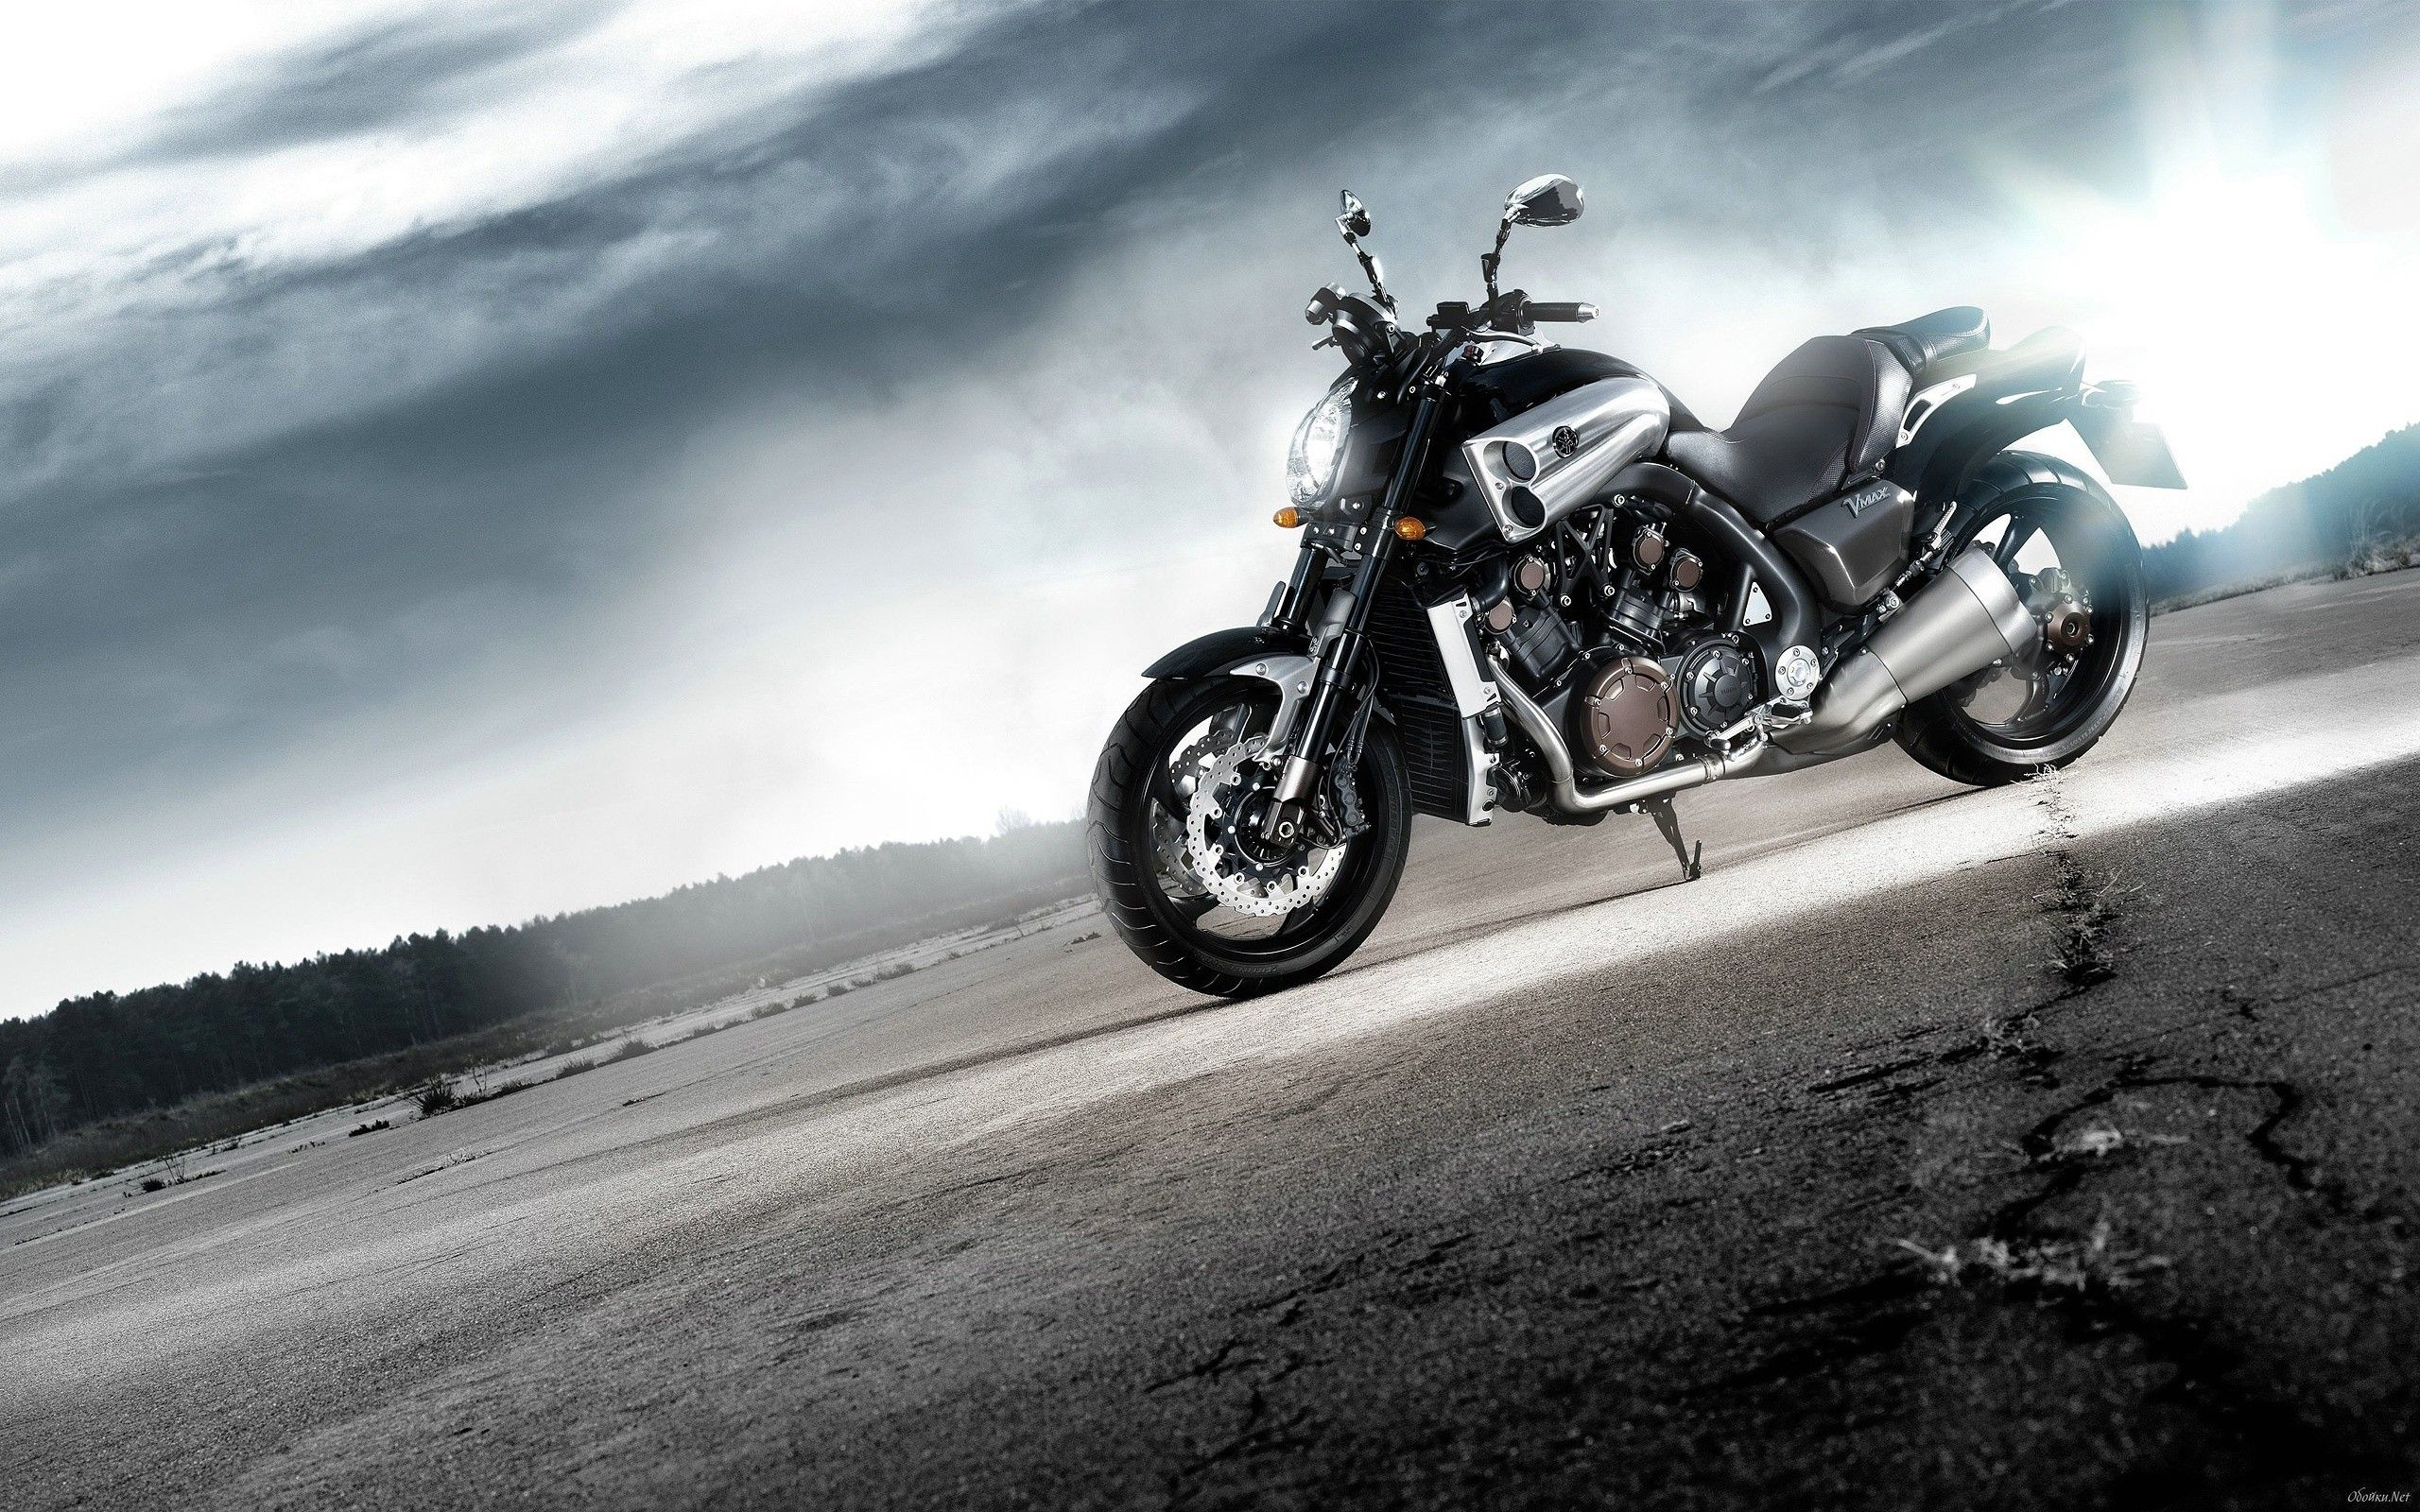 yamaha vmax, hd bikes, 4k wallpapers, images, backgrounds, photos